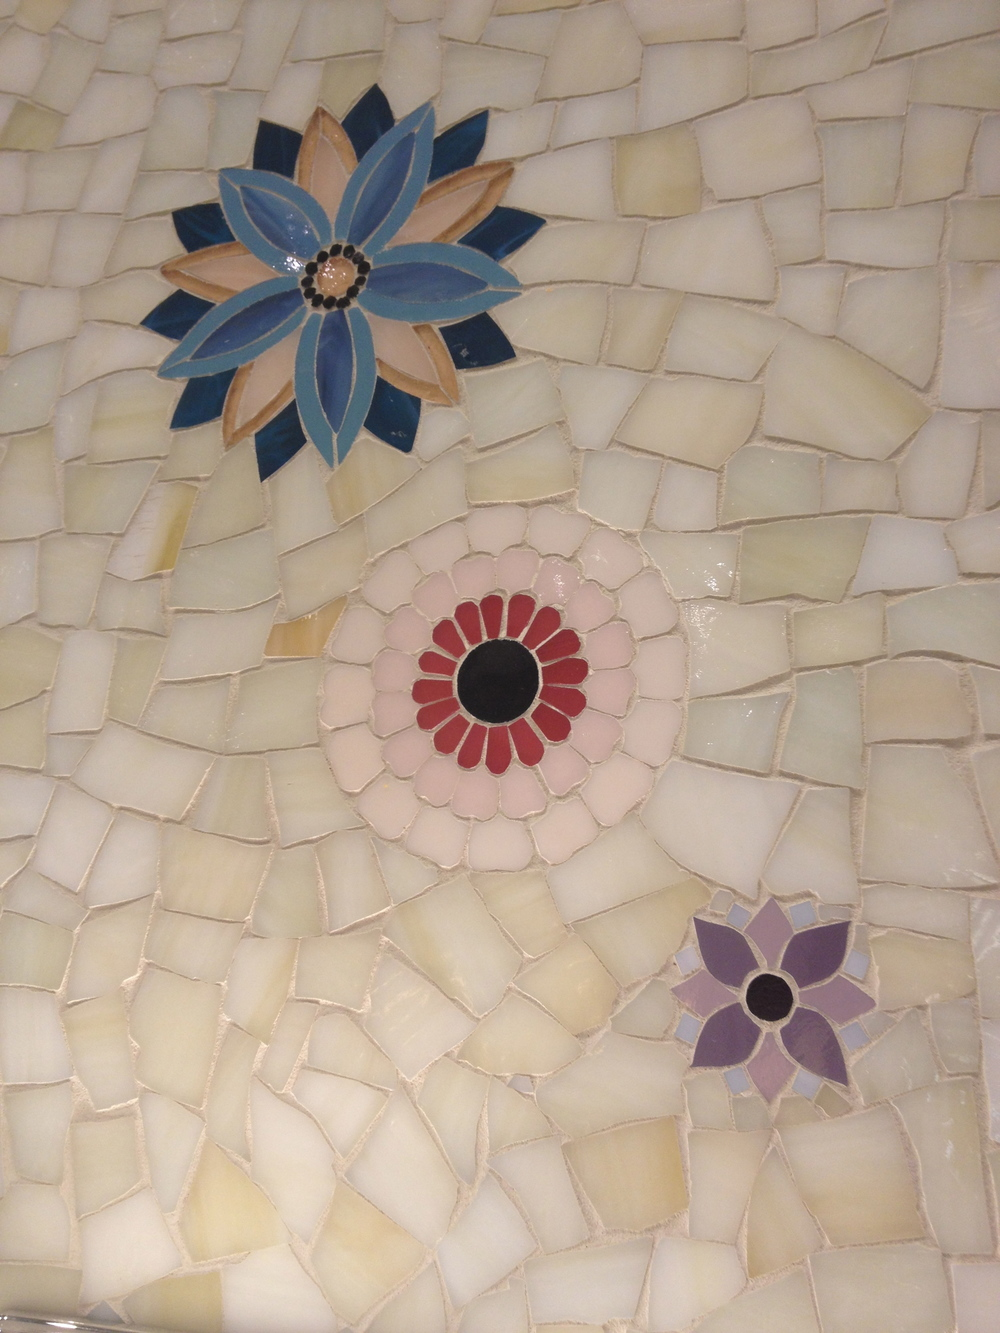 How cool is this glass mosaic?